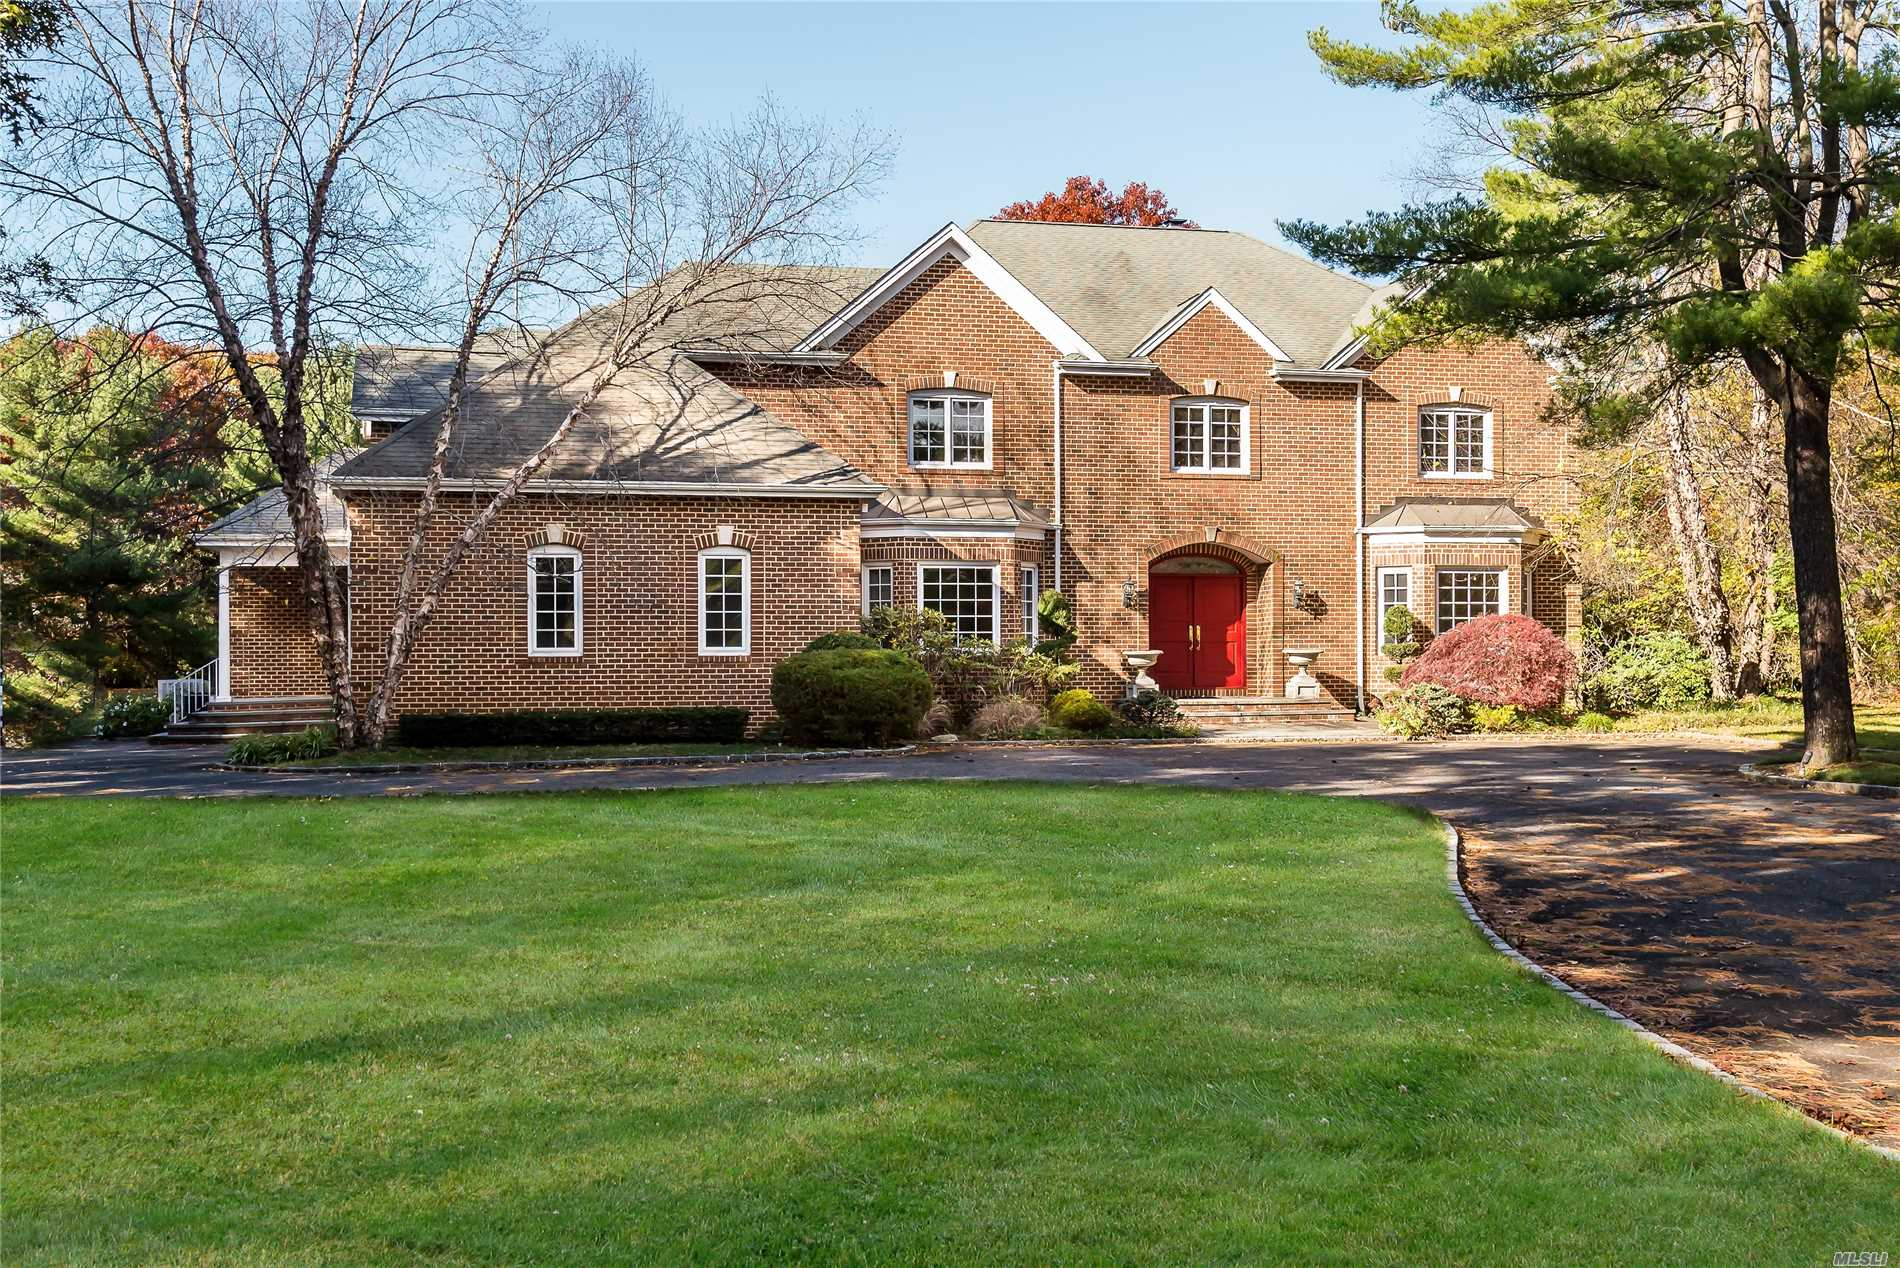 Traditional Brick Colonial On 2+ Acres. Jericho Schools, 6 Bedrooms. 3 Fireplaces. Ig Pool. Small Pets Allowed With Additional Security Deposit.